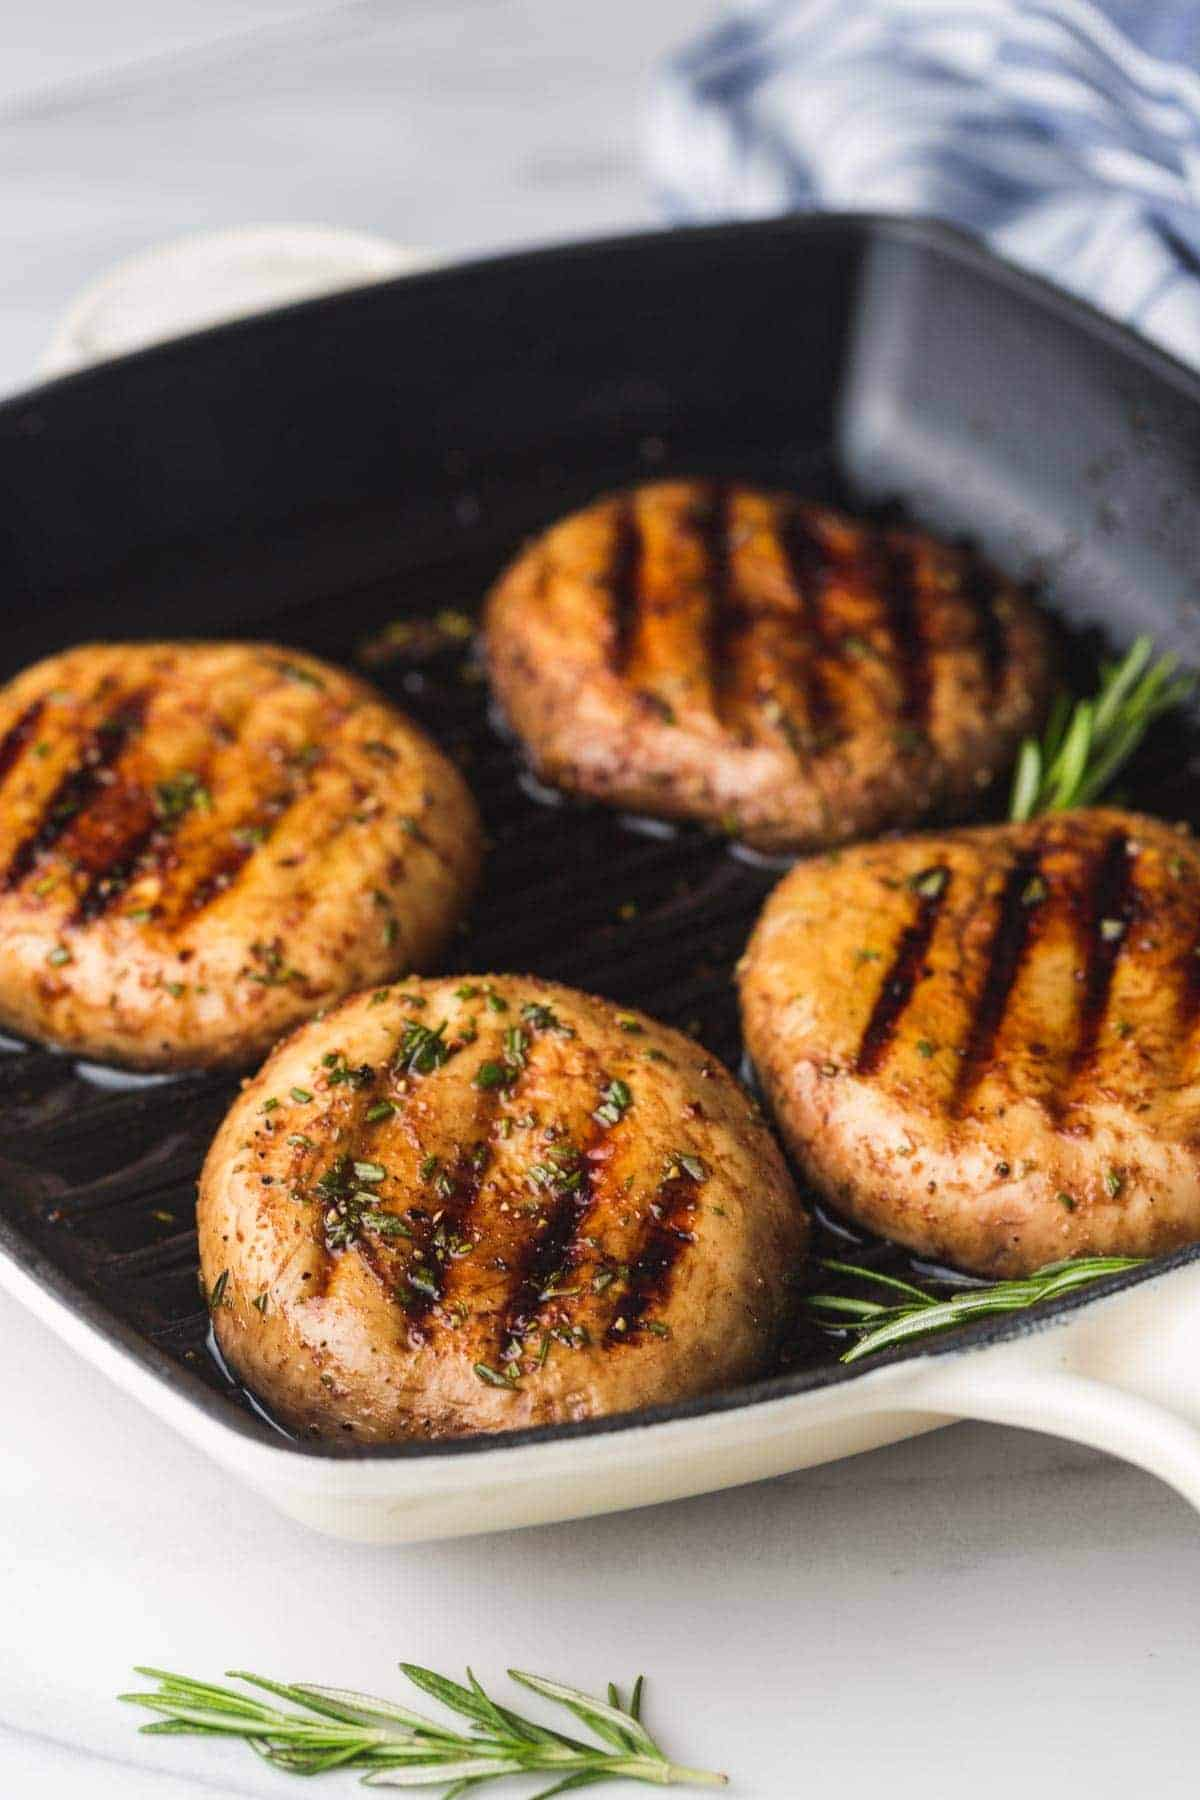 4 Grilled Portobello Mushrooms on a Staub cast iron grill pan with fresh rosemary